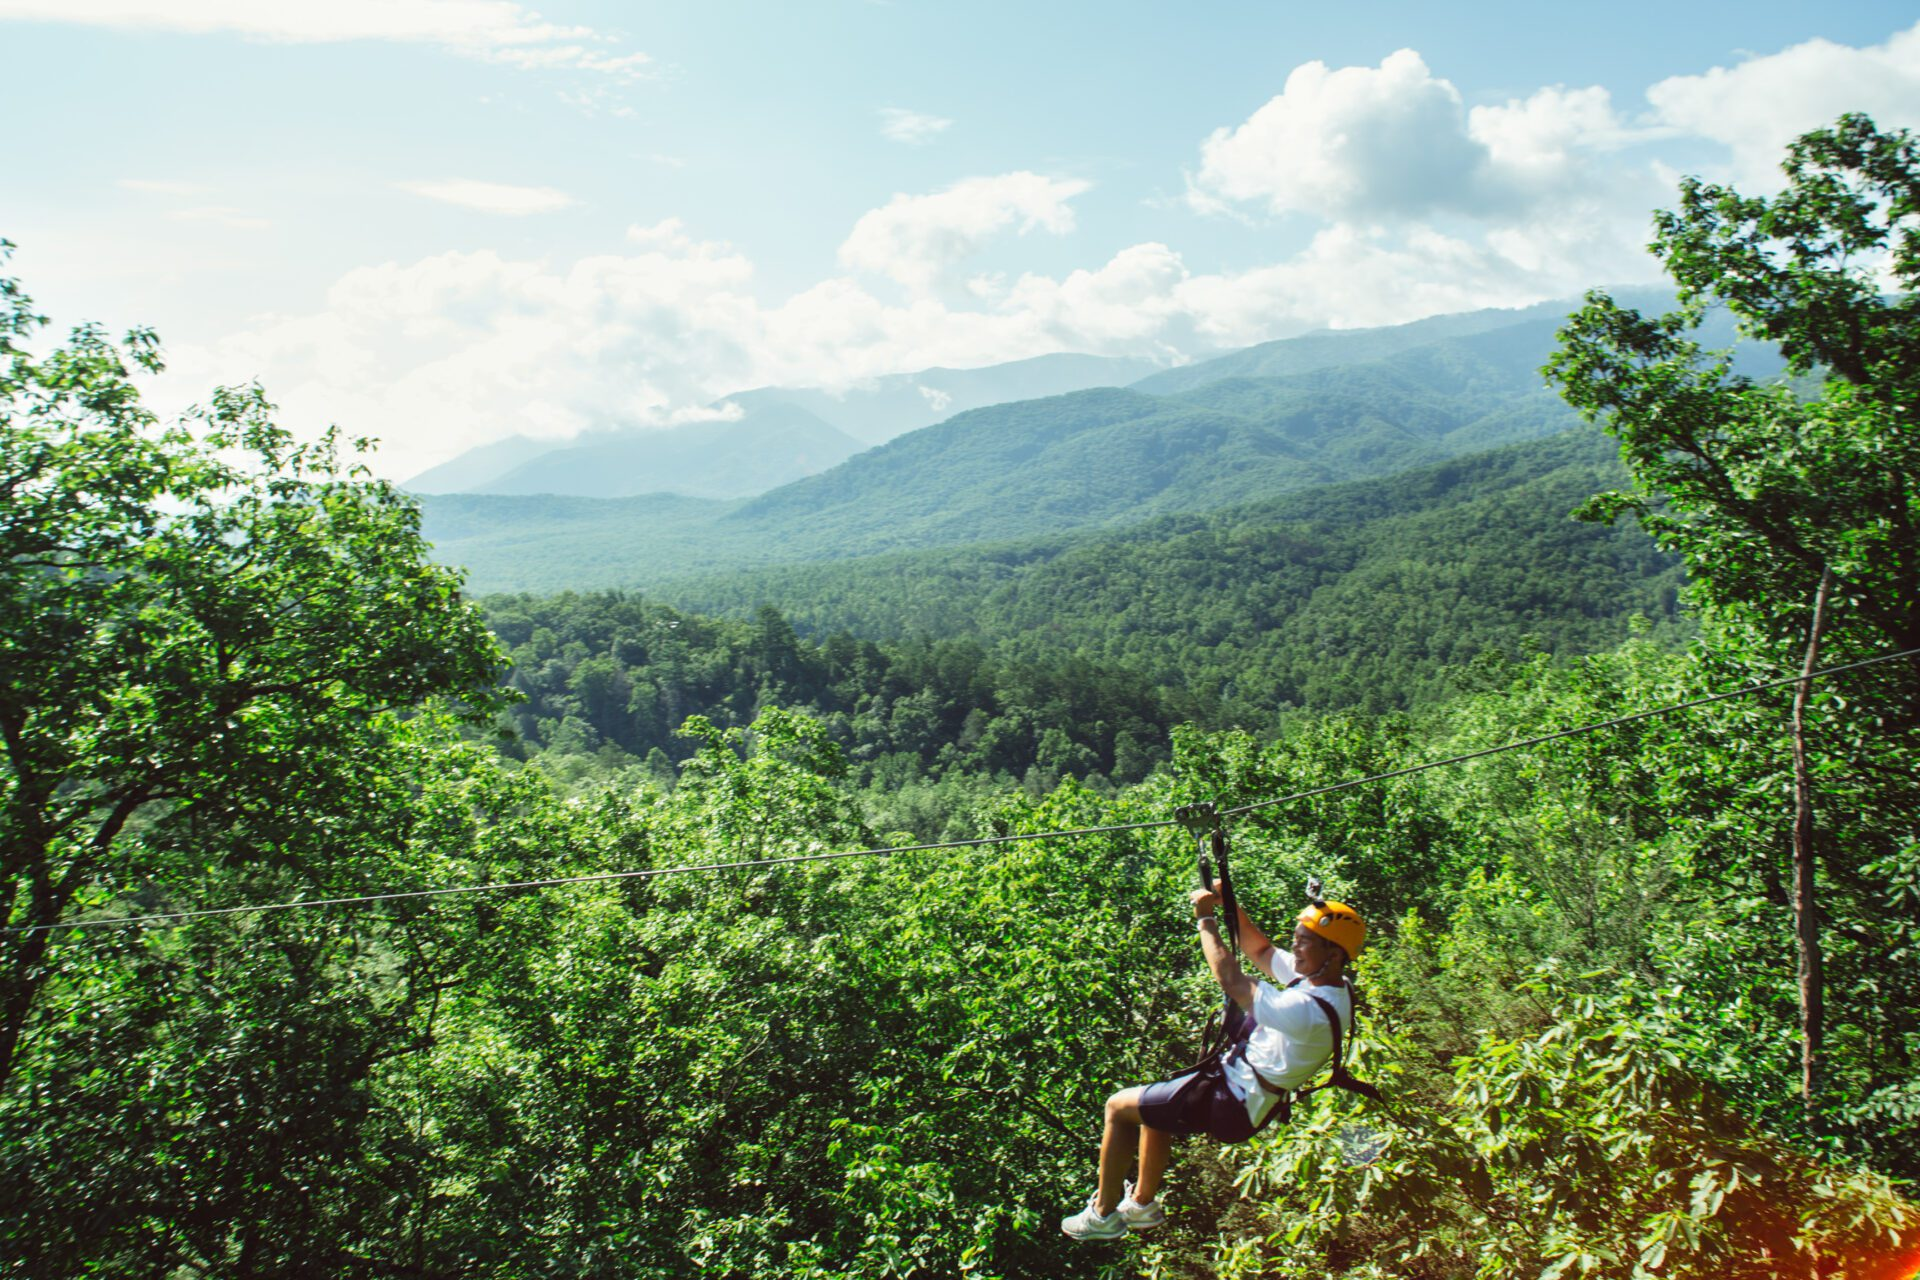 CLIMB Works and Smoky Mountain Outdoors Partner to Offer Adventure-Filled Smoky Mountain Experience